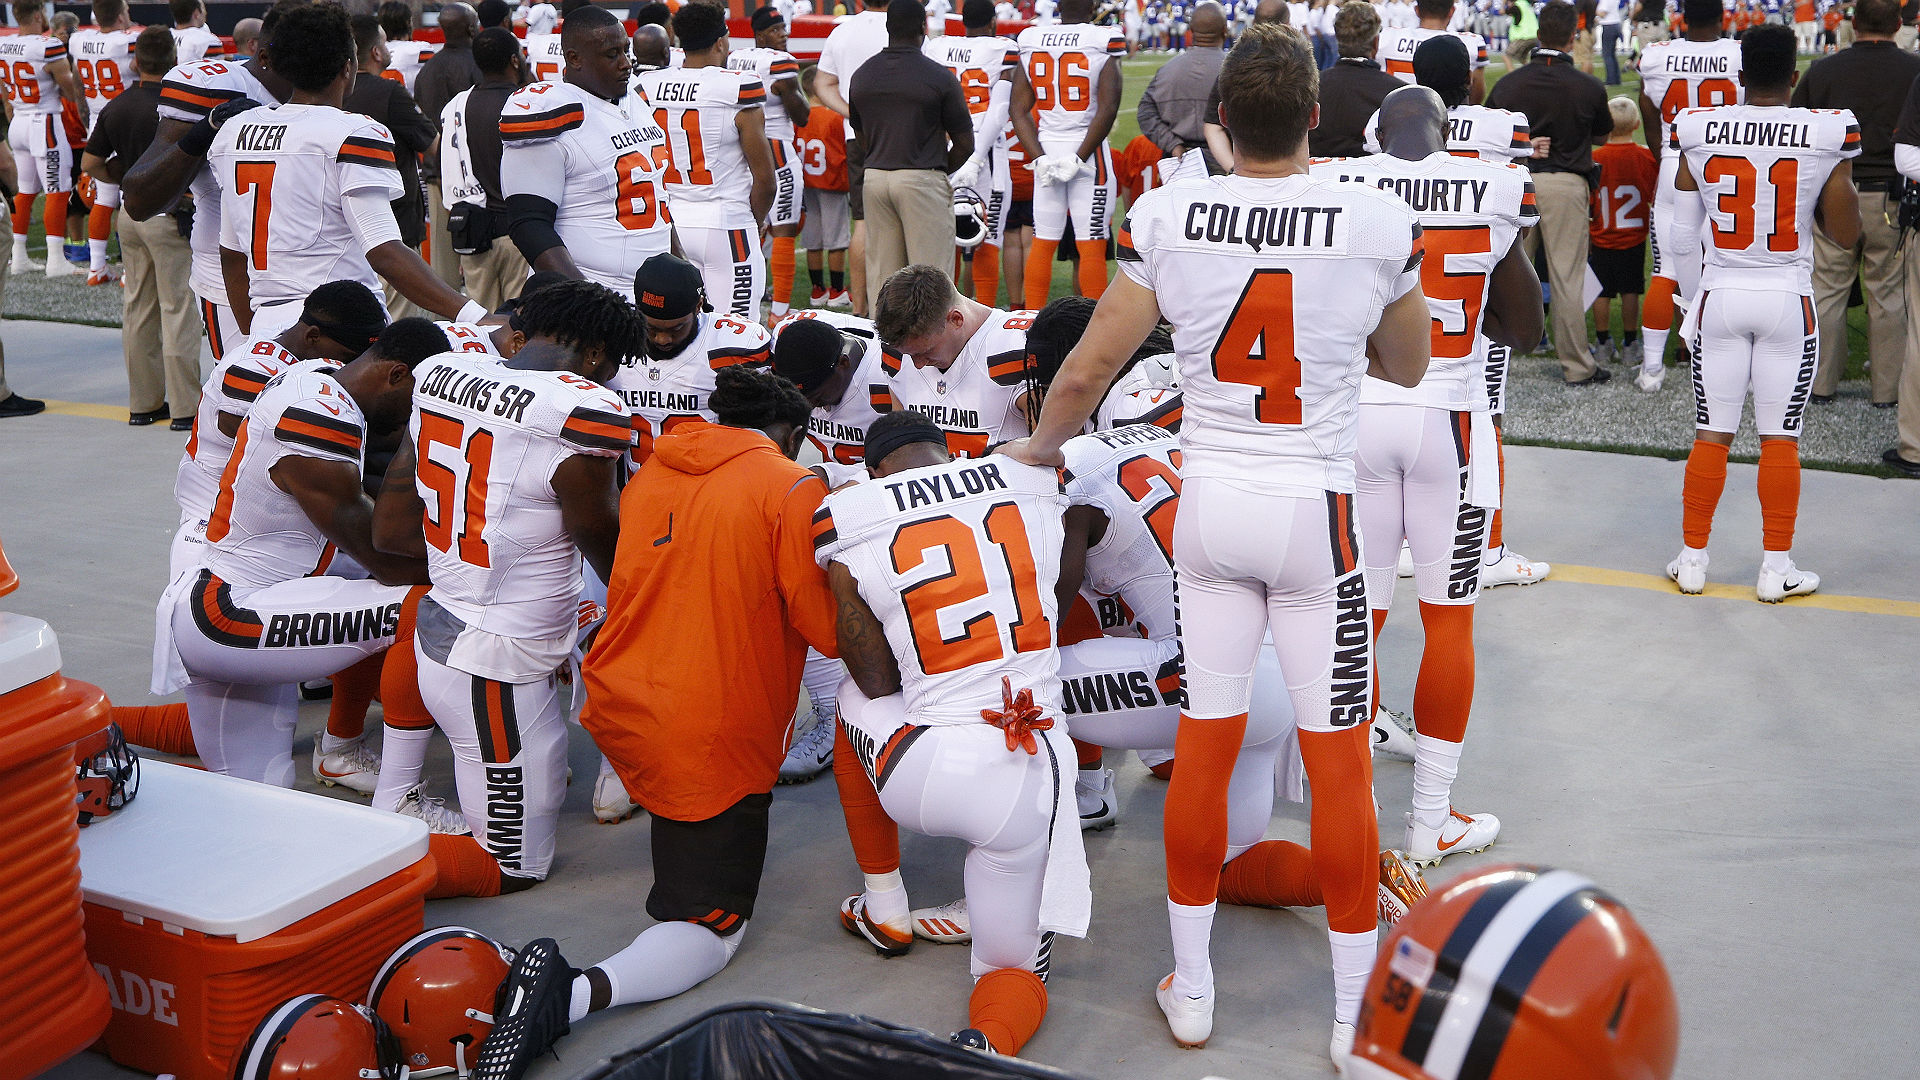 Cleveland Police Unhappy with Anthem Protests, Won't Hold Flag at Browns Opener